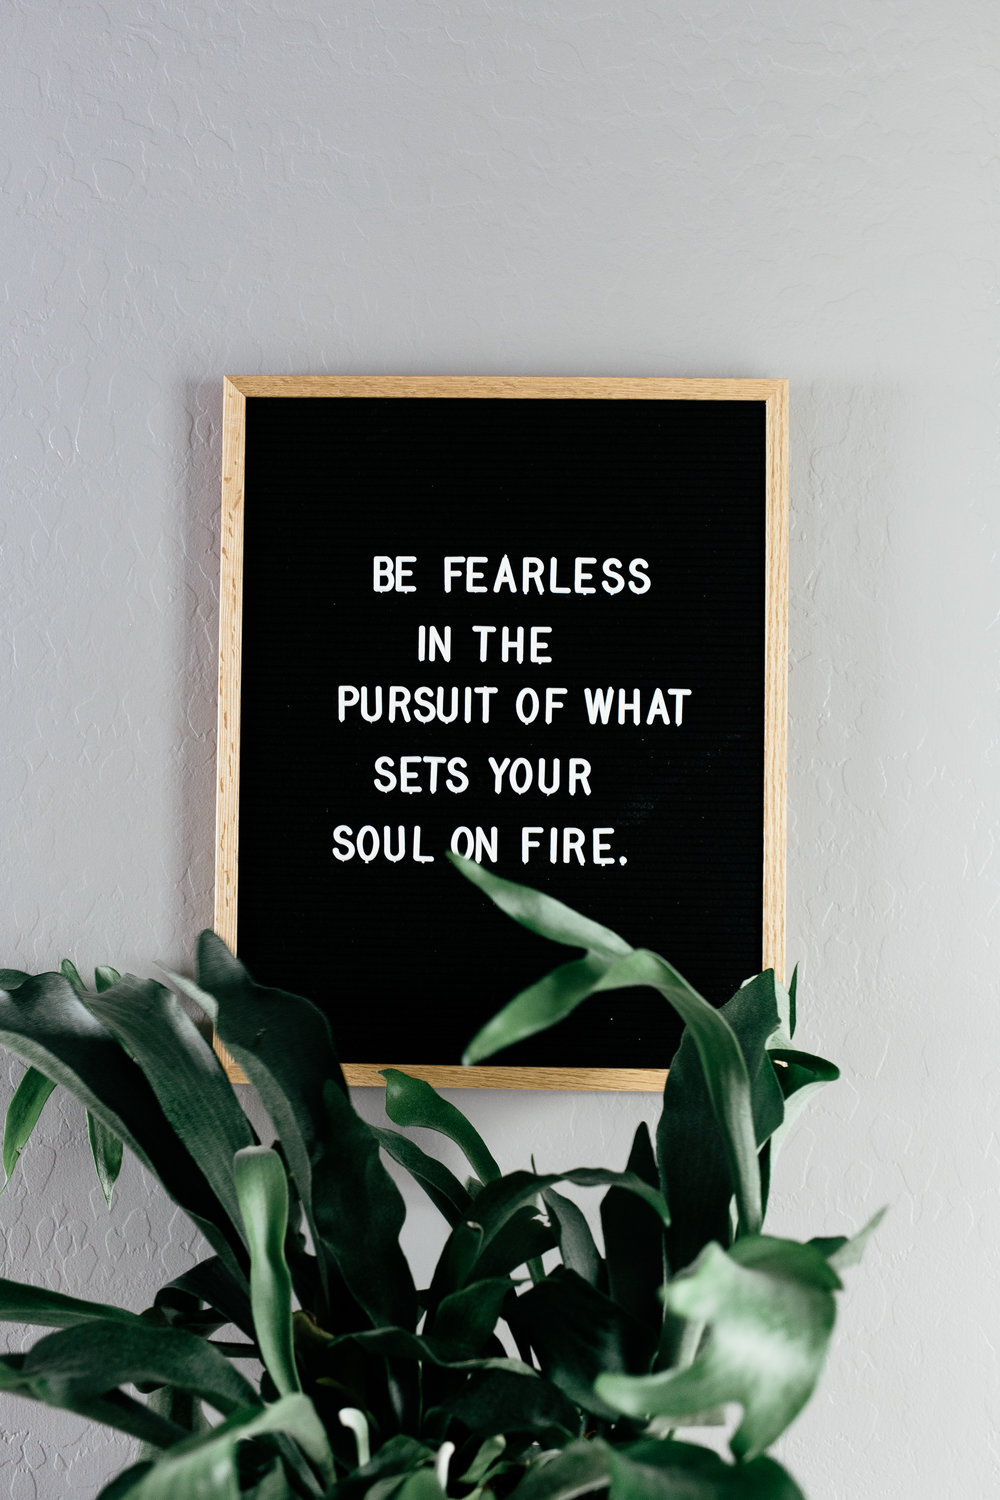 Be fearless. Live vibrantly, you Minimalist.